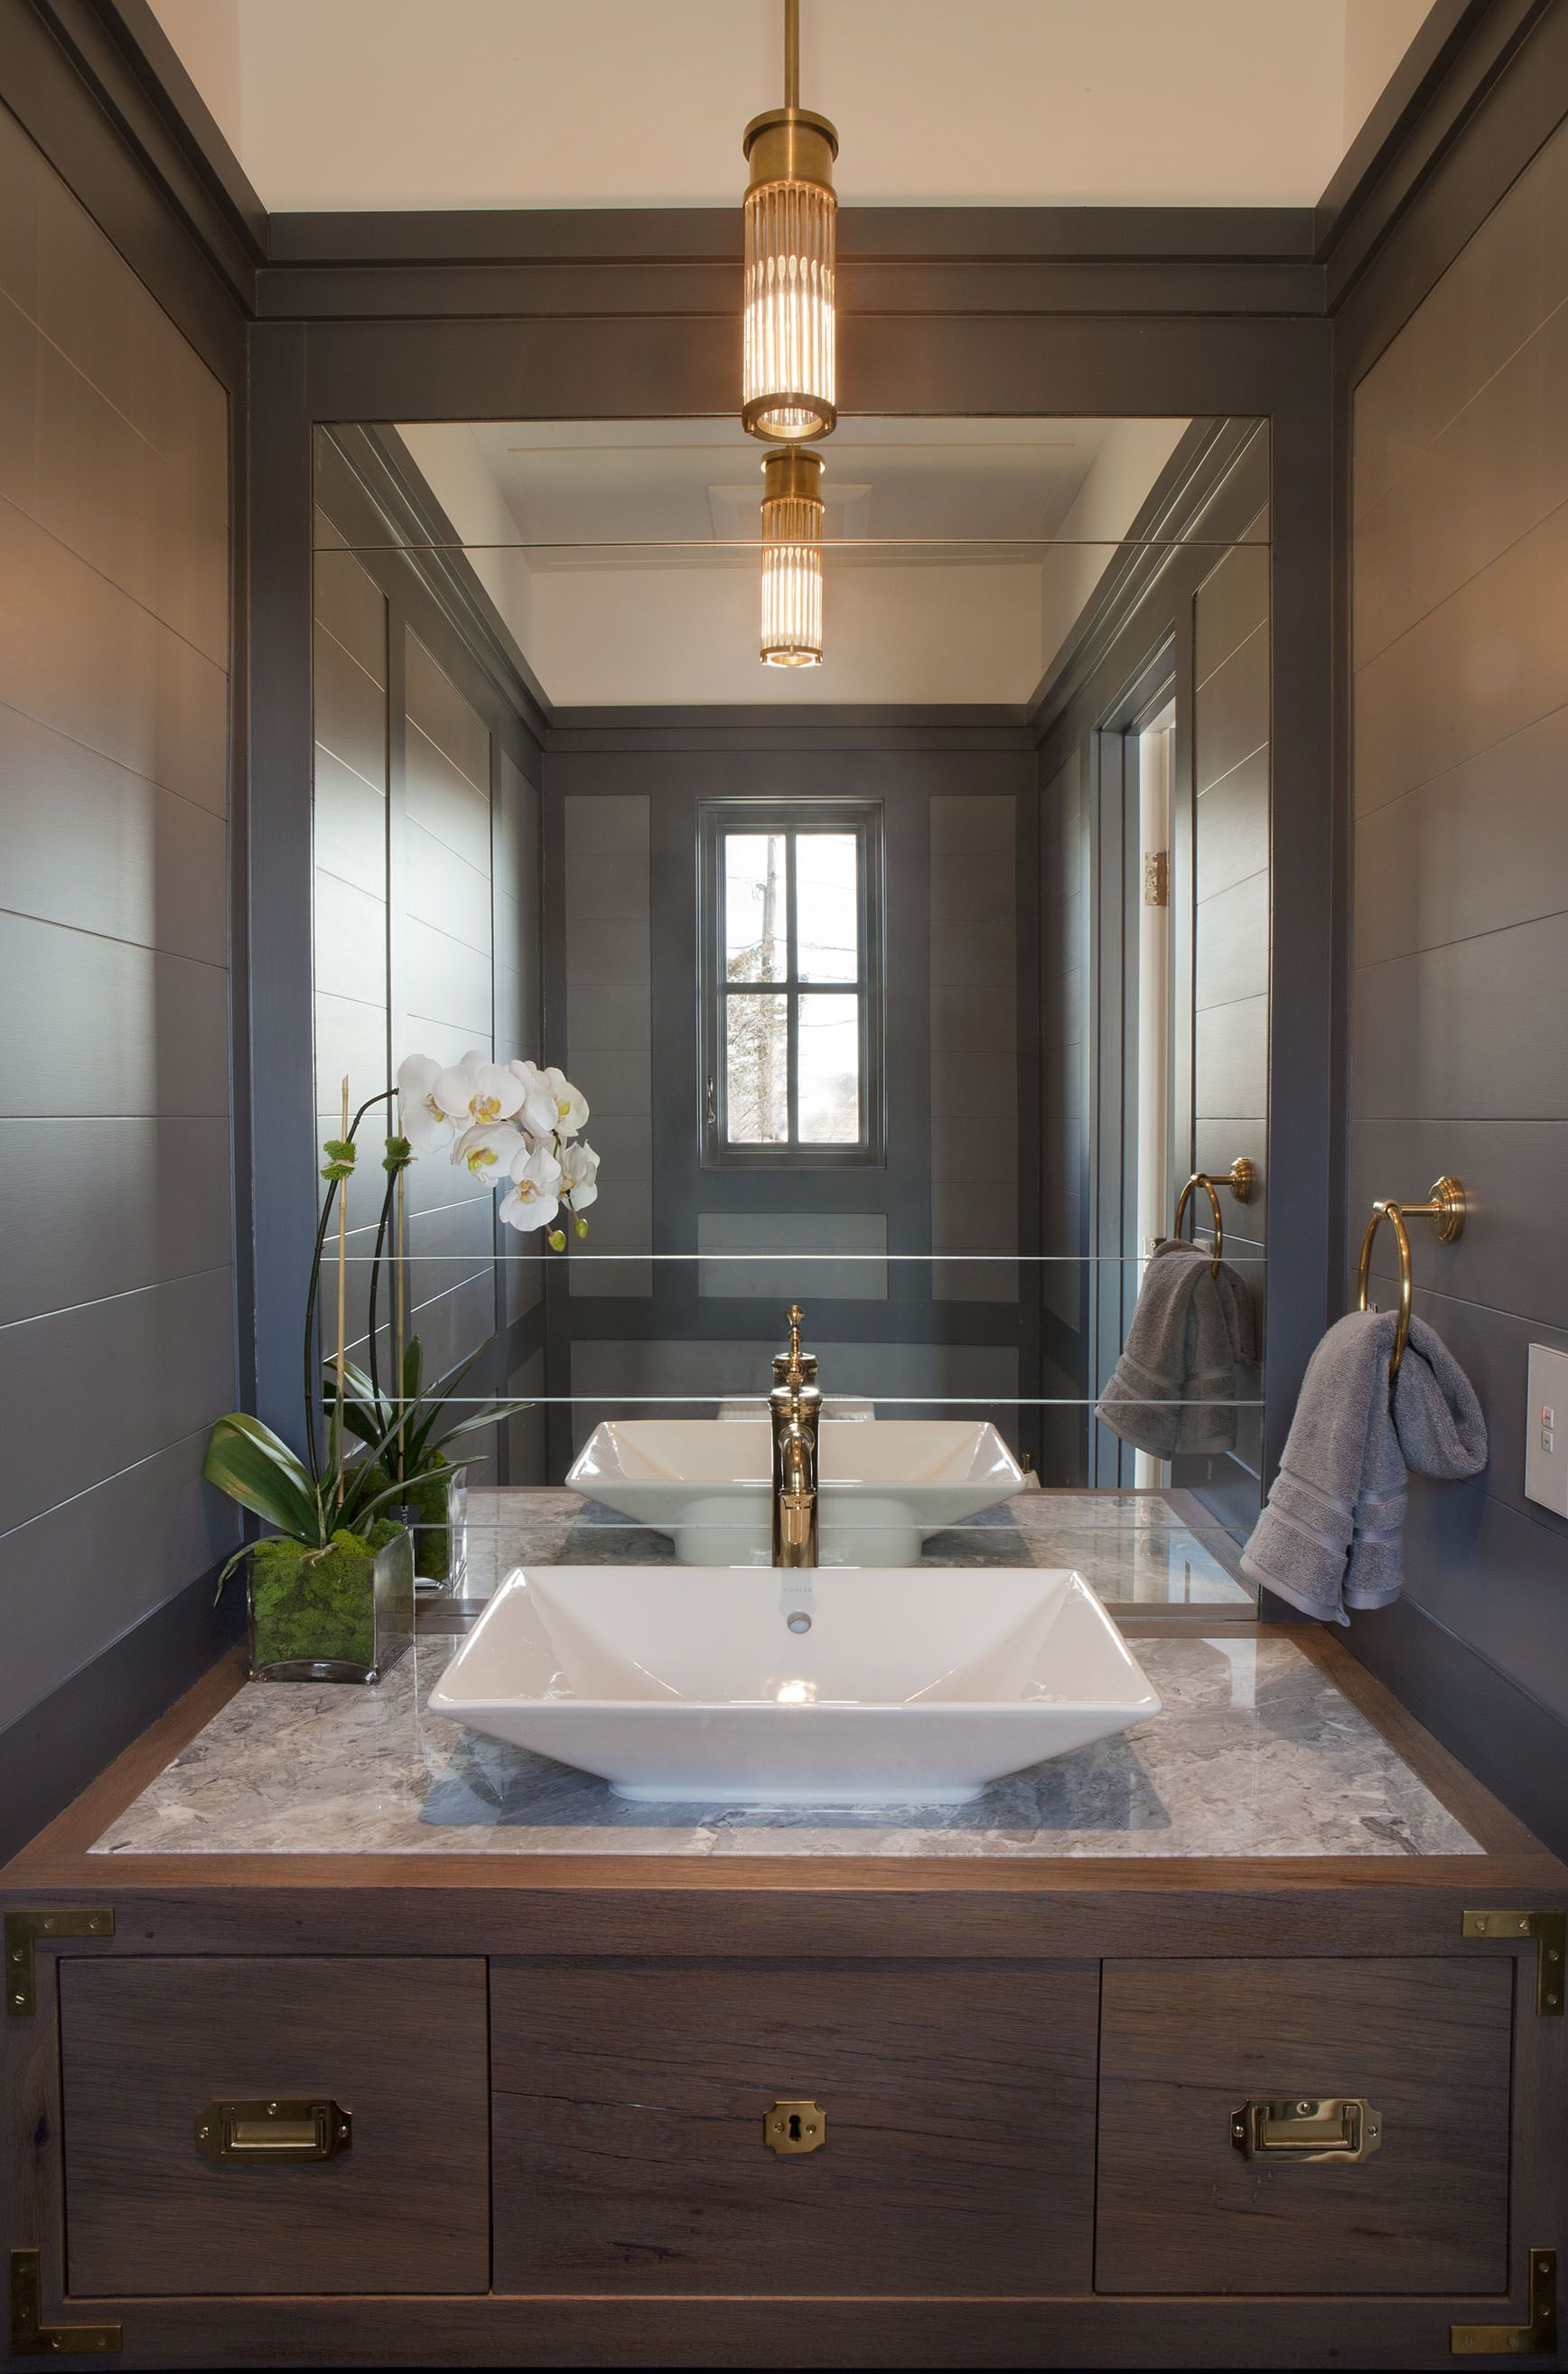 Powder Room                                                          © Christopher Gallo Photography